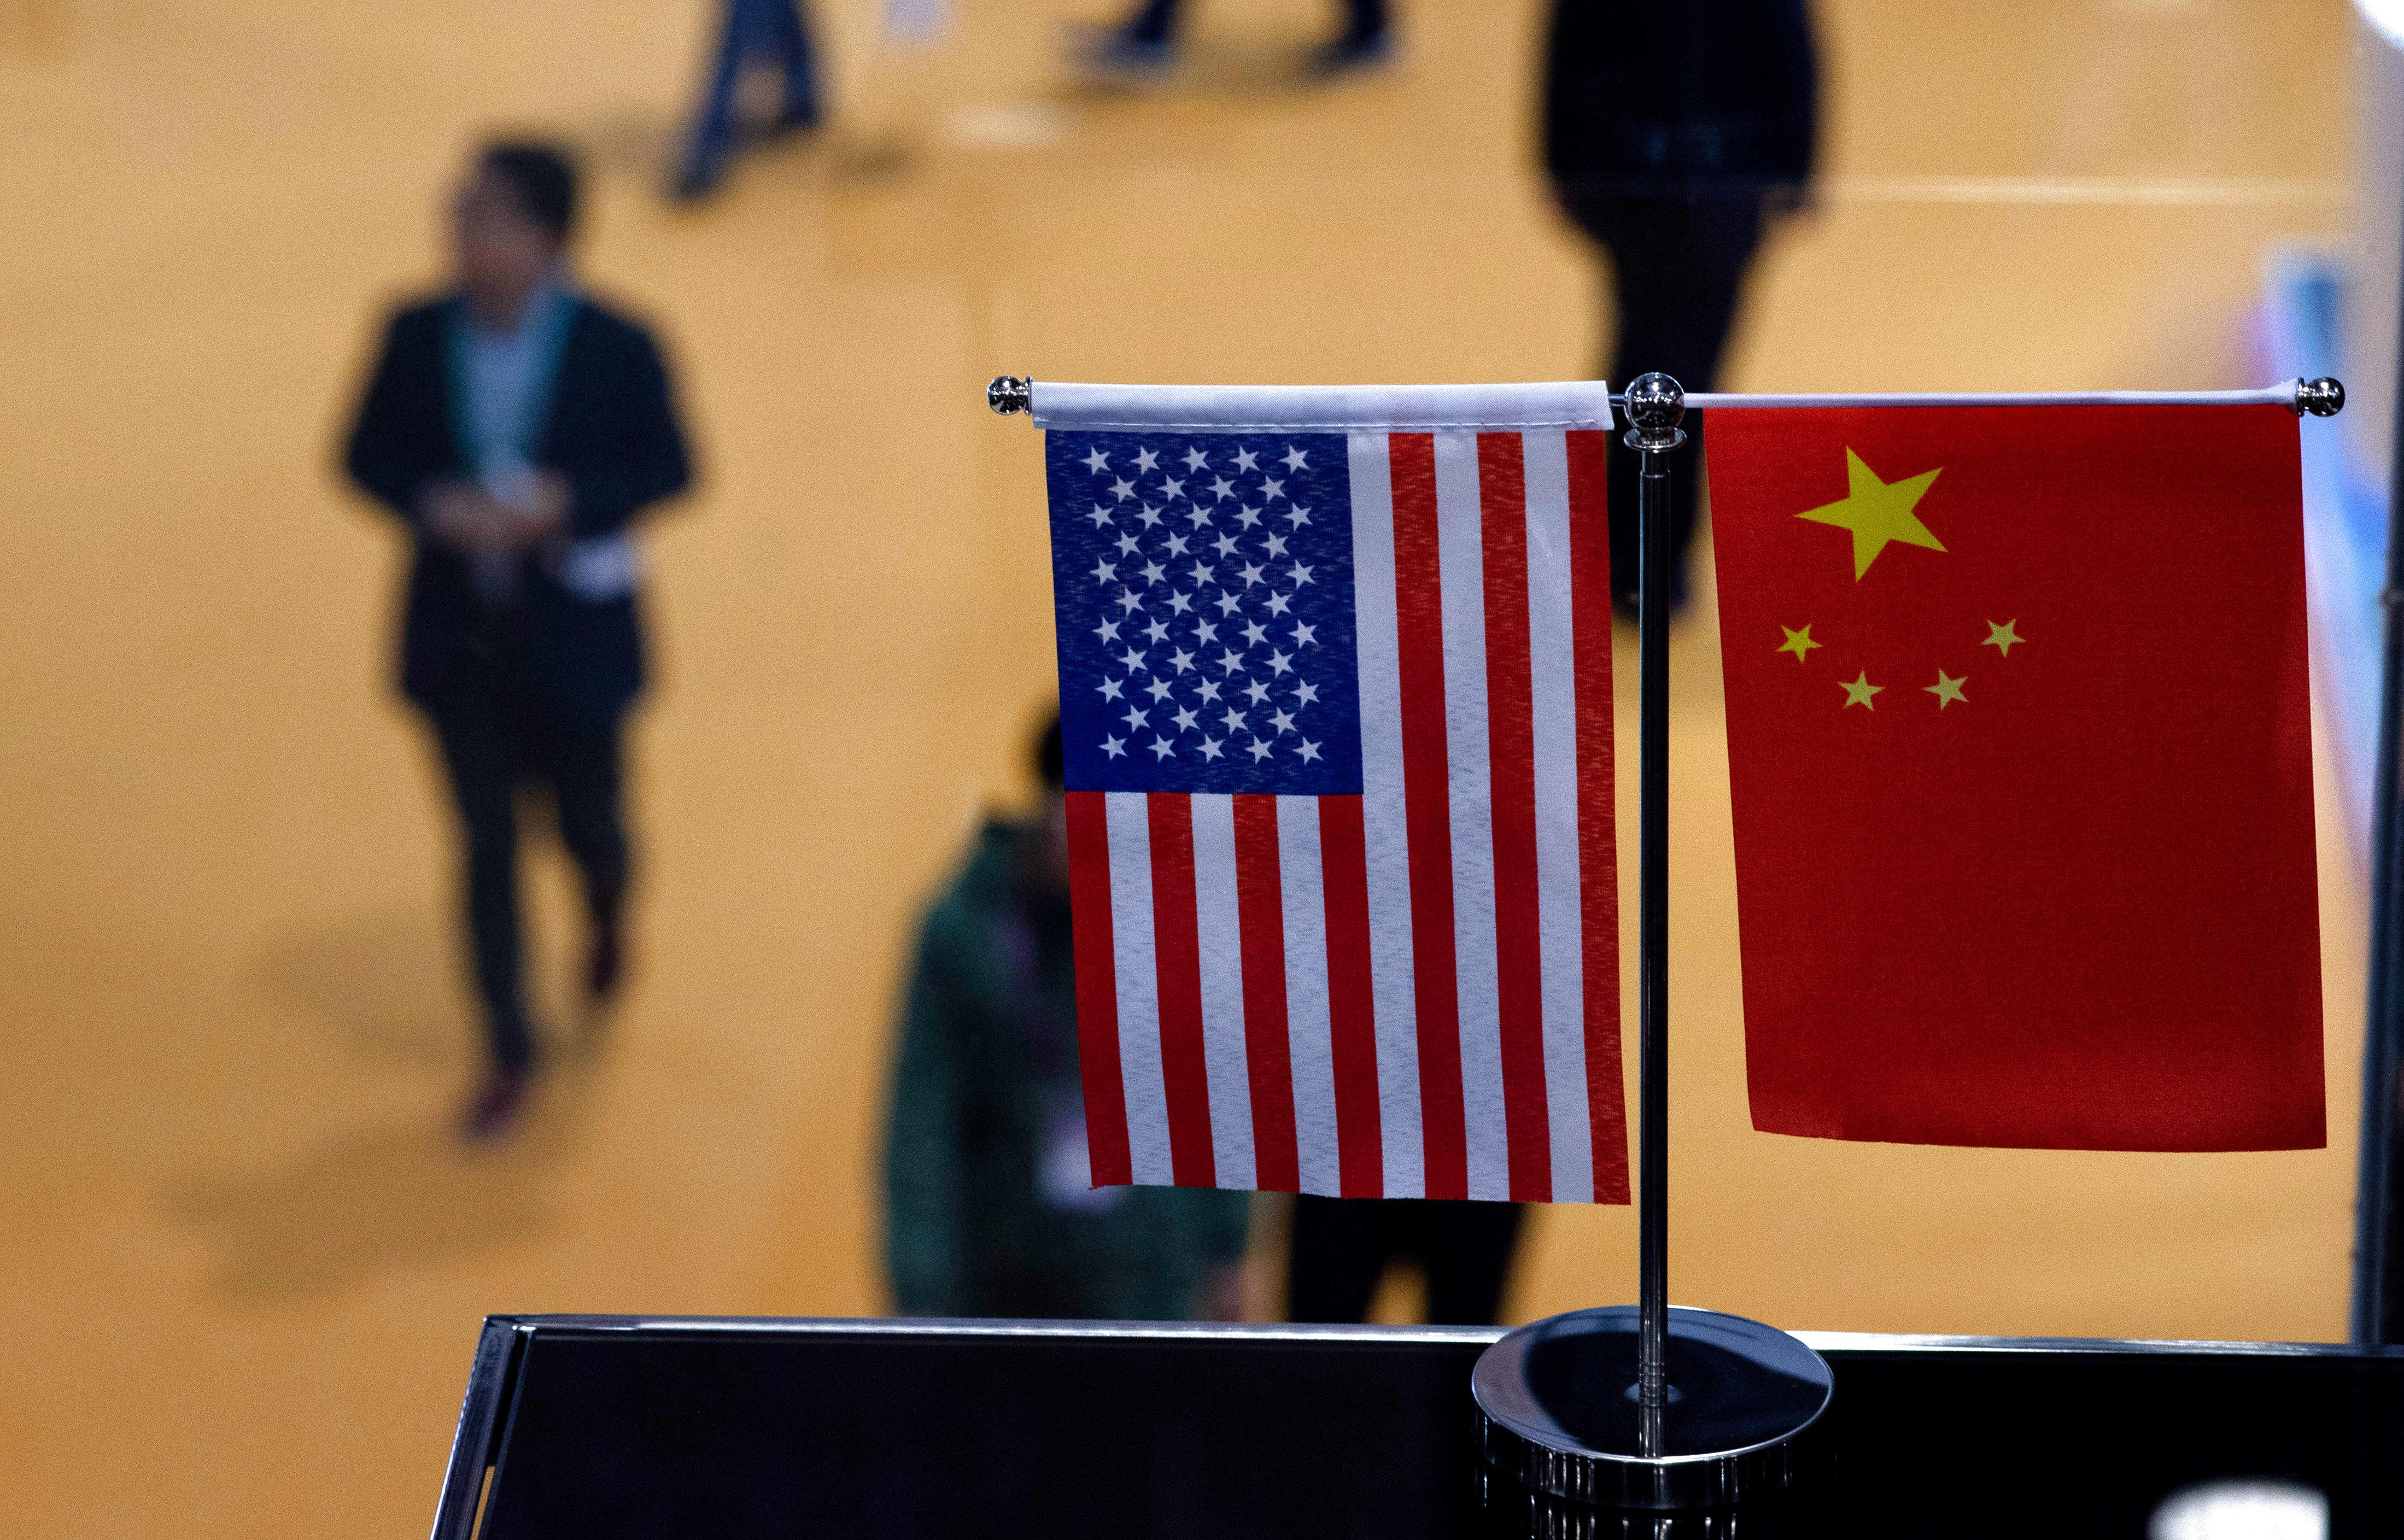 Here's everything that happened over the weekend with the US-China trade war